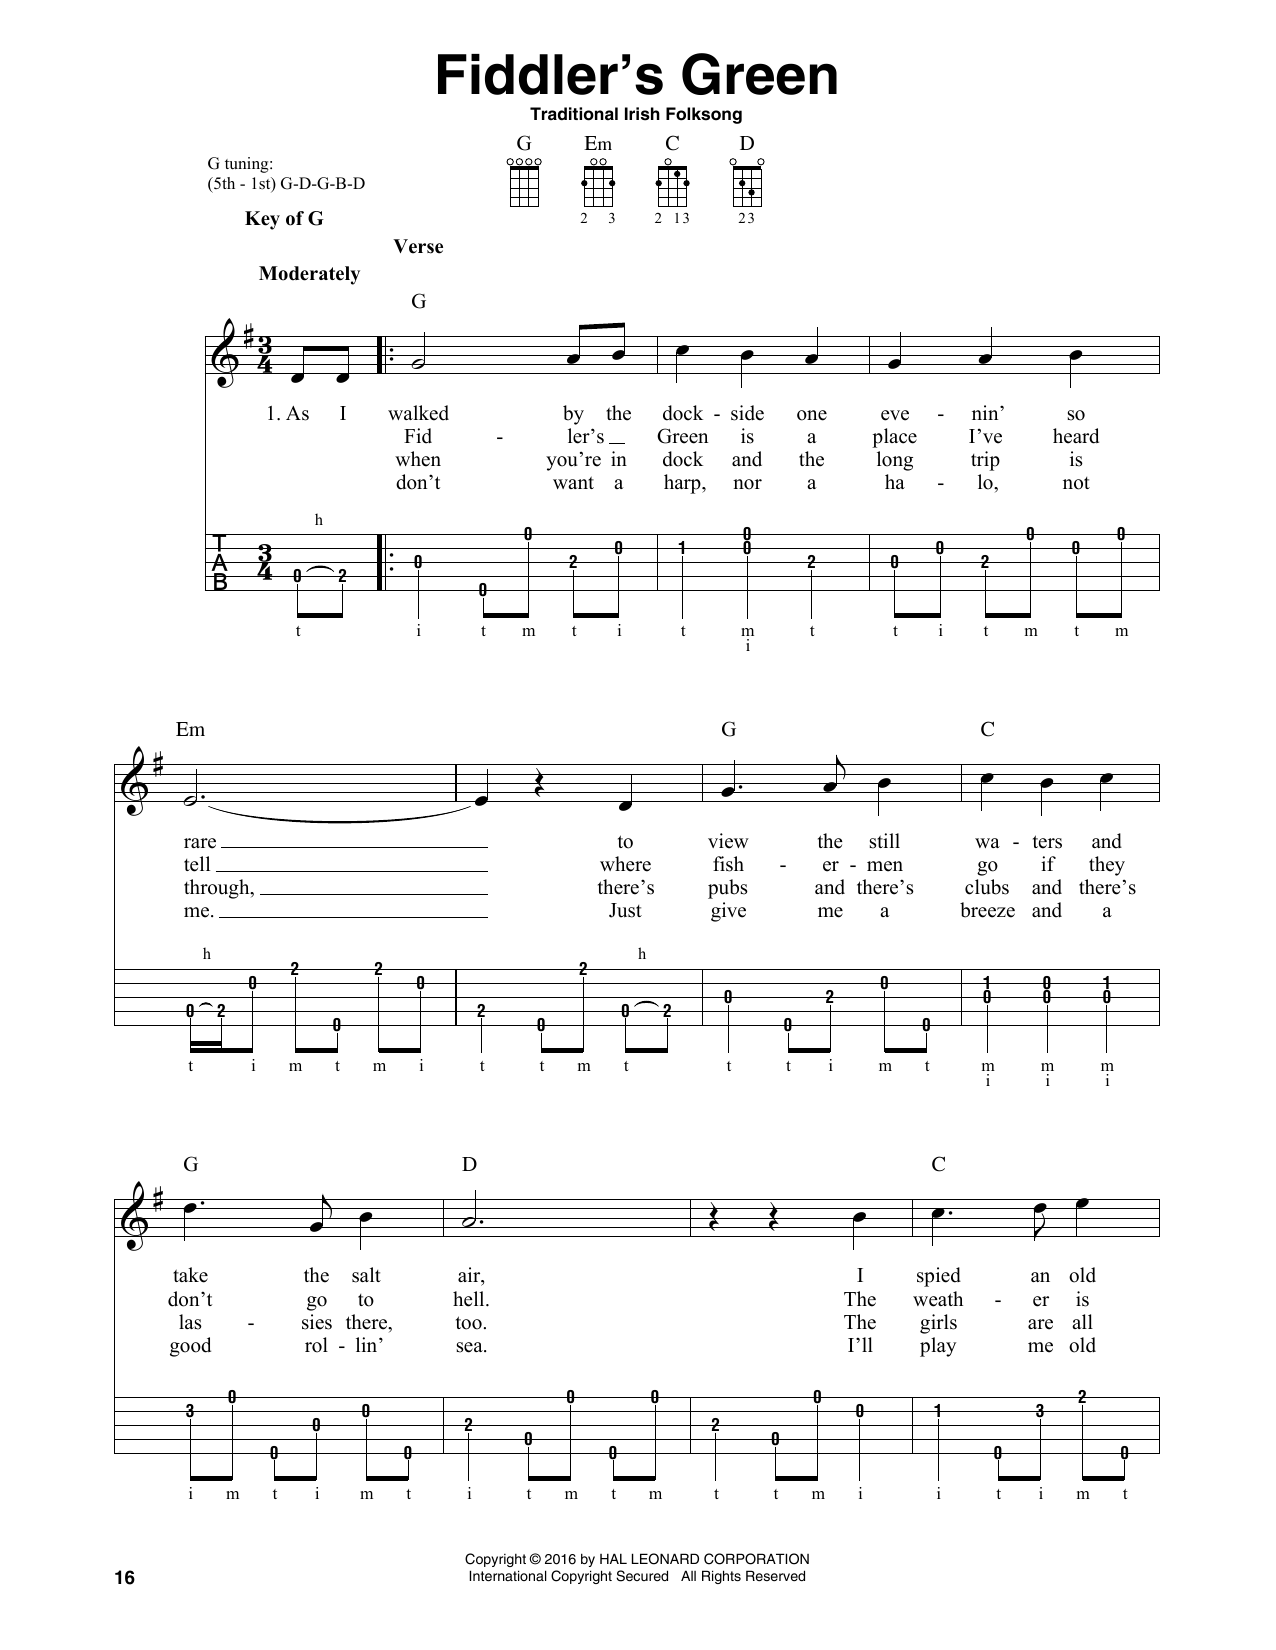 Fiddler's Green Sheet Music